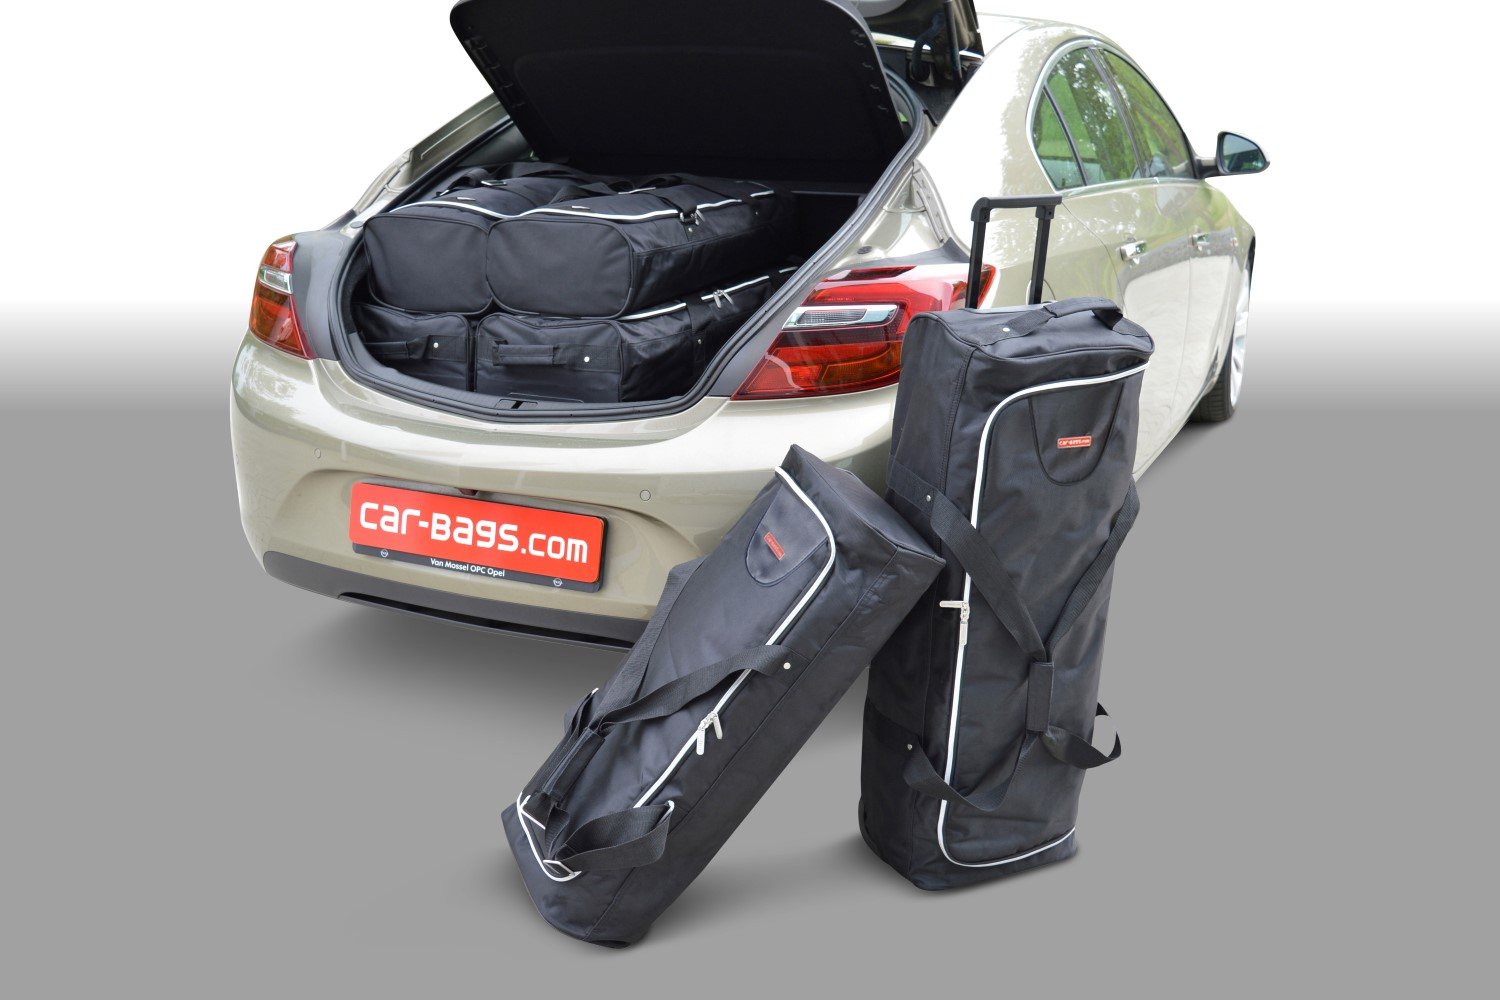 Opel Insignia A 2008-2017 5 door Car-Bags.com travel bag set (1)